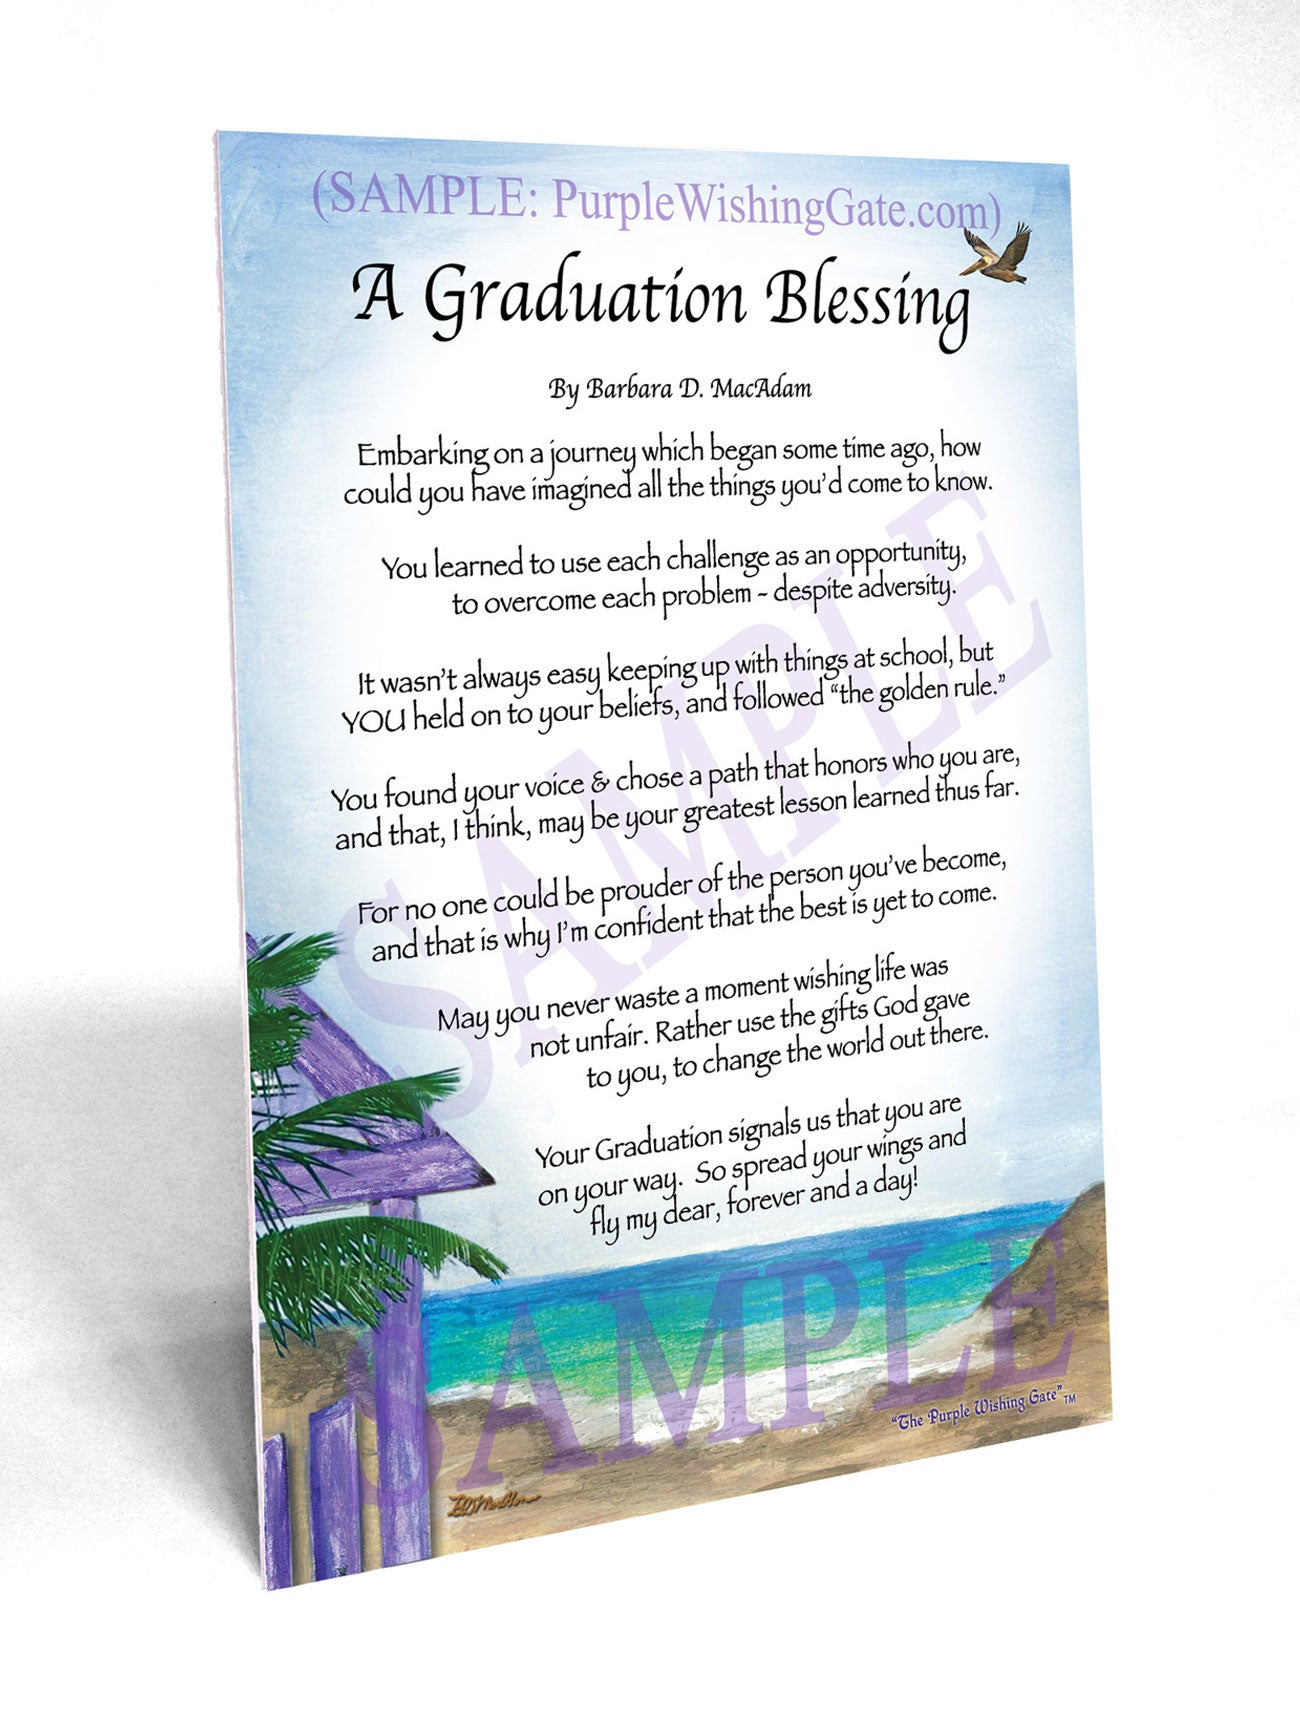 A Graduation Blessing Framed And Personalized Gifts